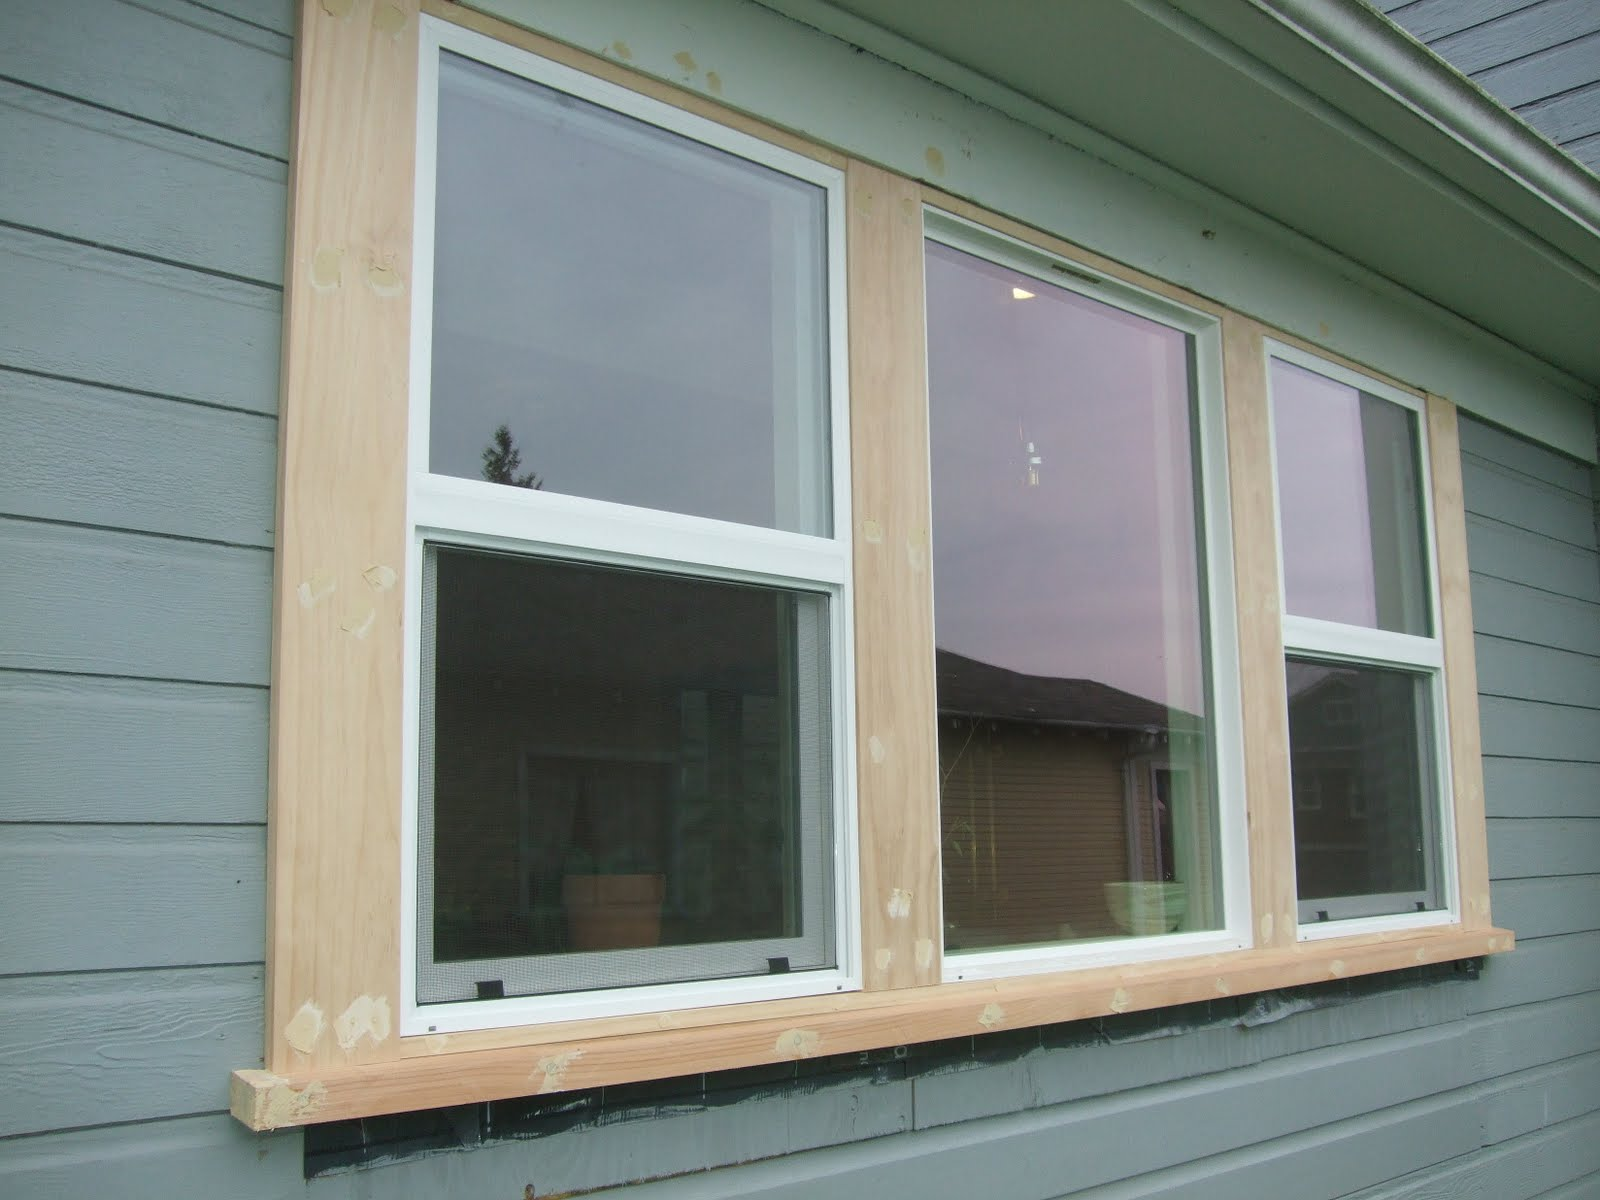 Hottest exterior outside window trim homesfeed - Exterior window designs for house ...